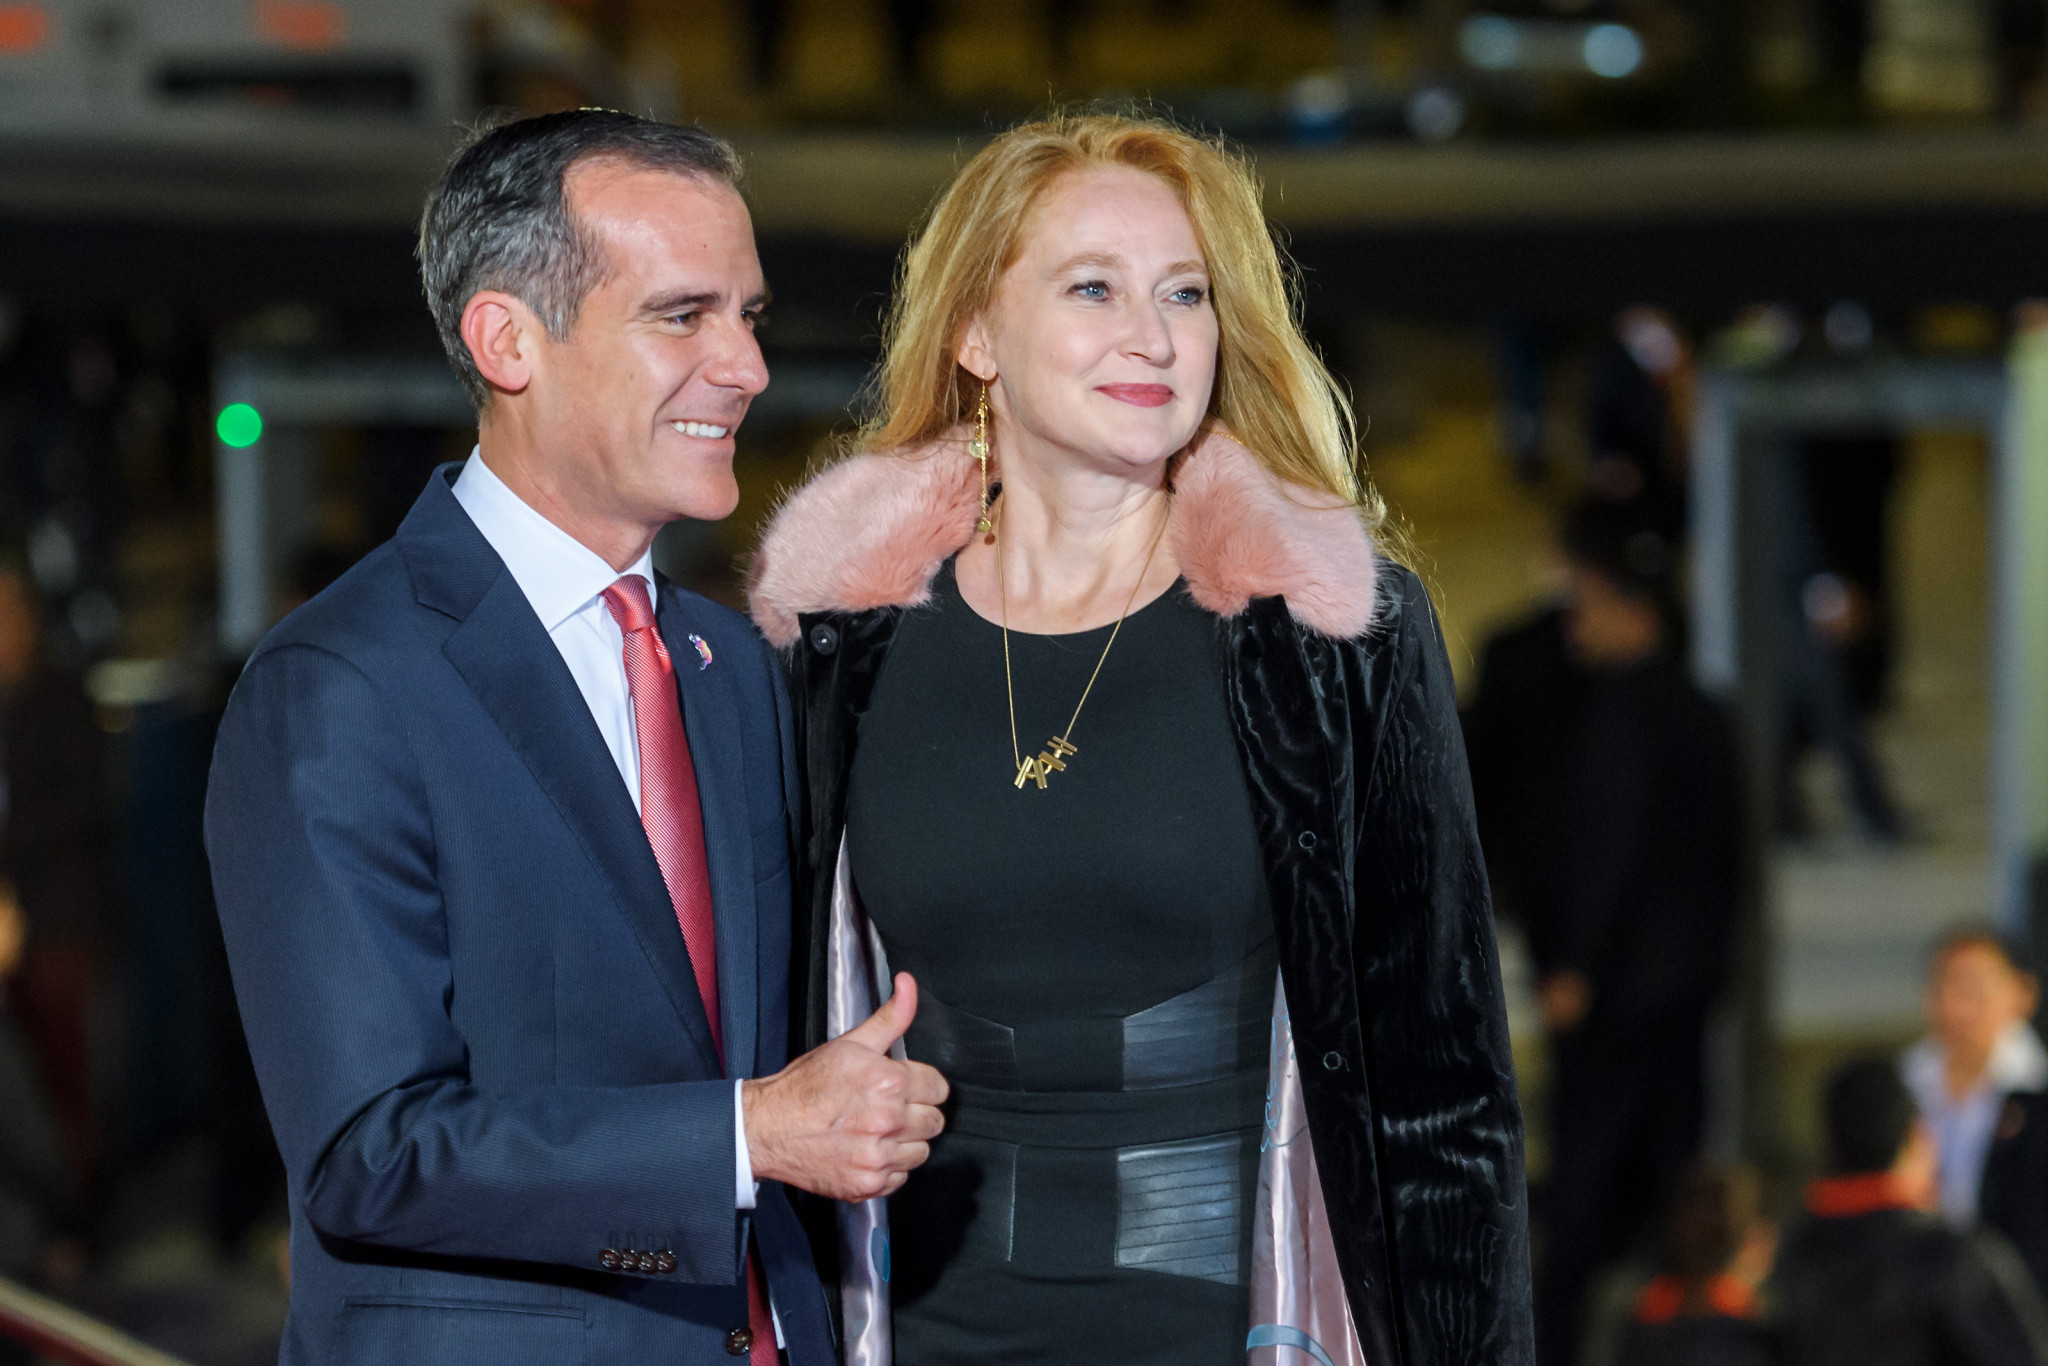 Los Angeles Mayor Eric Garcetti was also present prior to the city being awarded the 2028 Games ©Getty Images